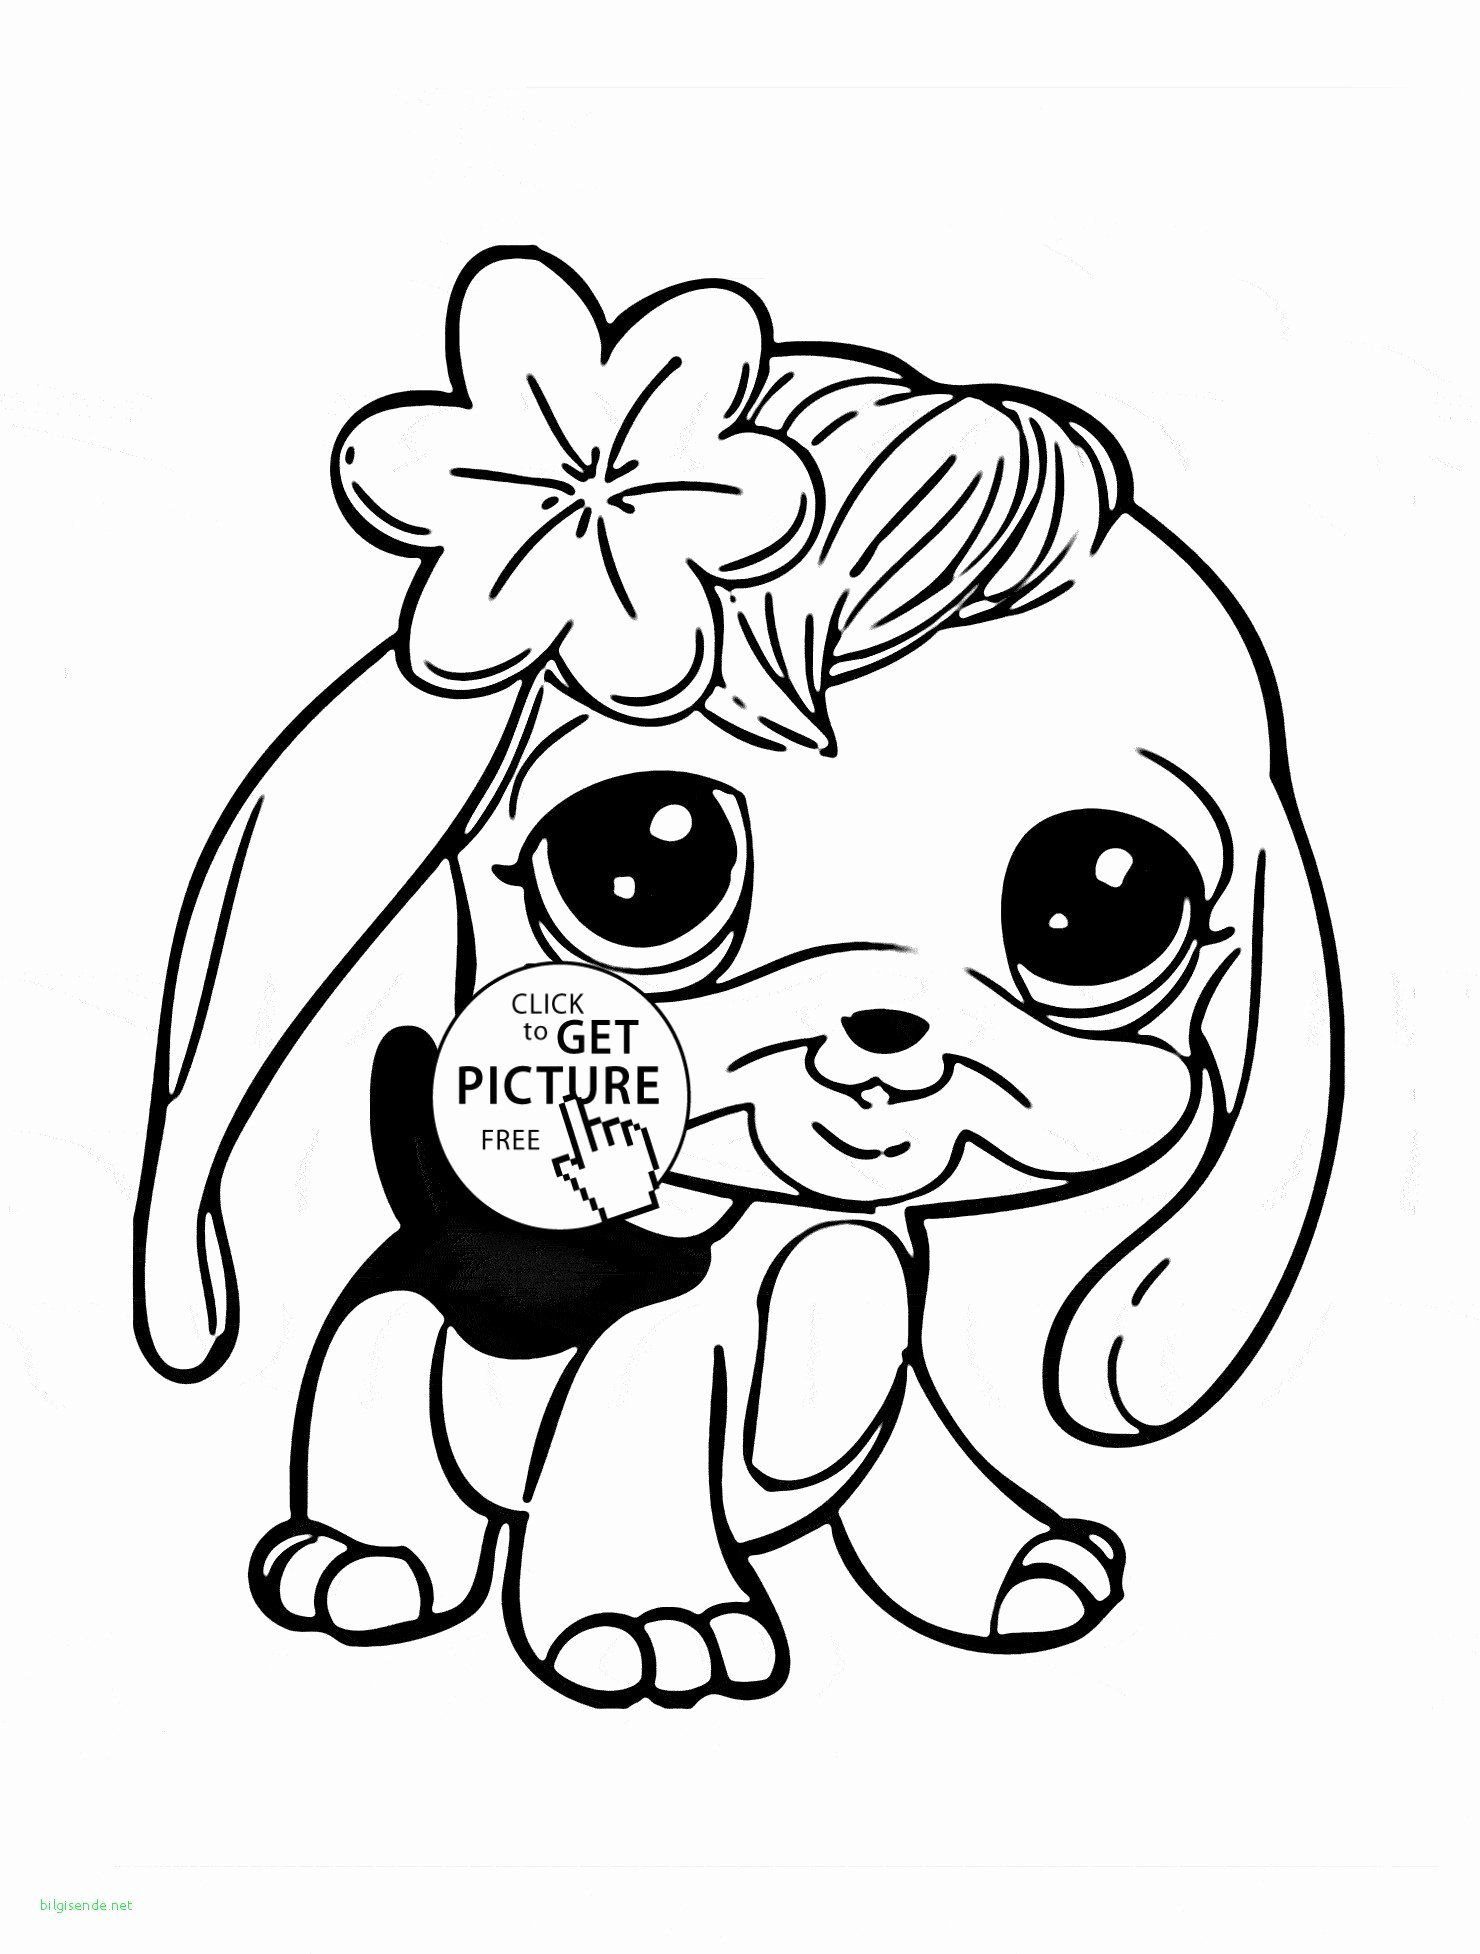 Animal Jam Coloring Pages Arctic Wolf Lovely Coloring Book Printable Coloring Pages Kids Snow Fo Animal Coloring Books Zoo Coloring Pages Animal Coloring Pages